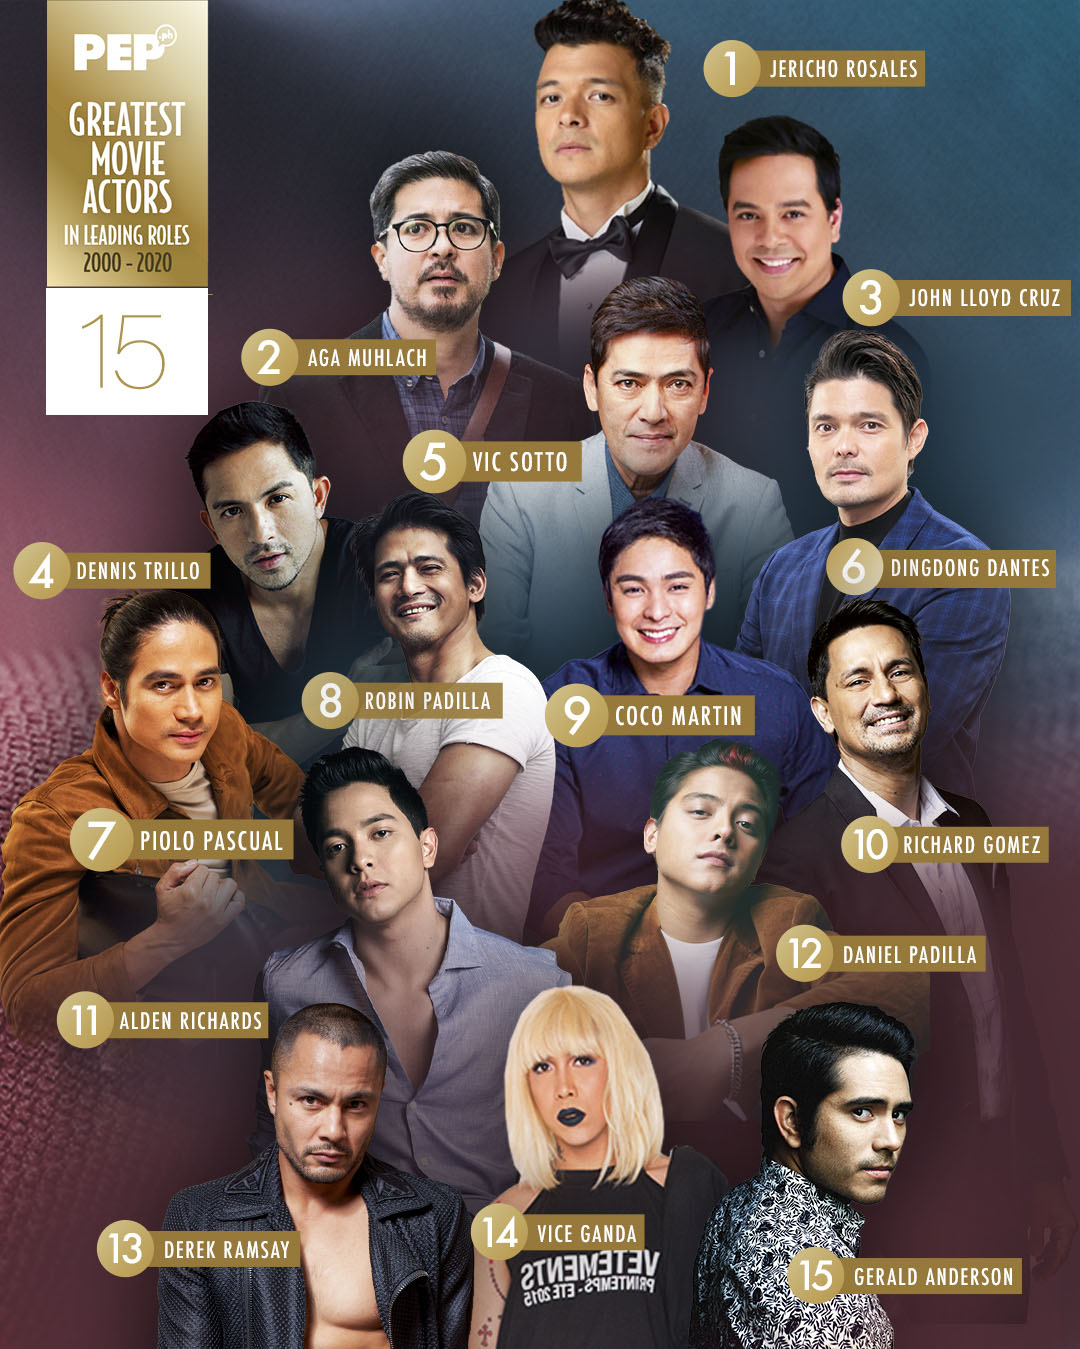 Pep.ph 15 Greatest Movie Actors in leading roles